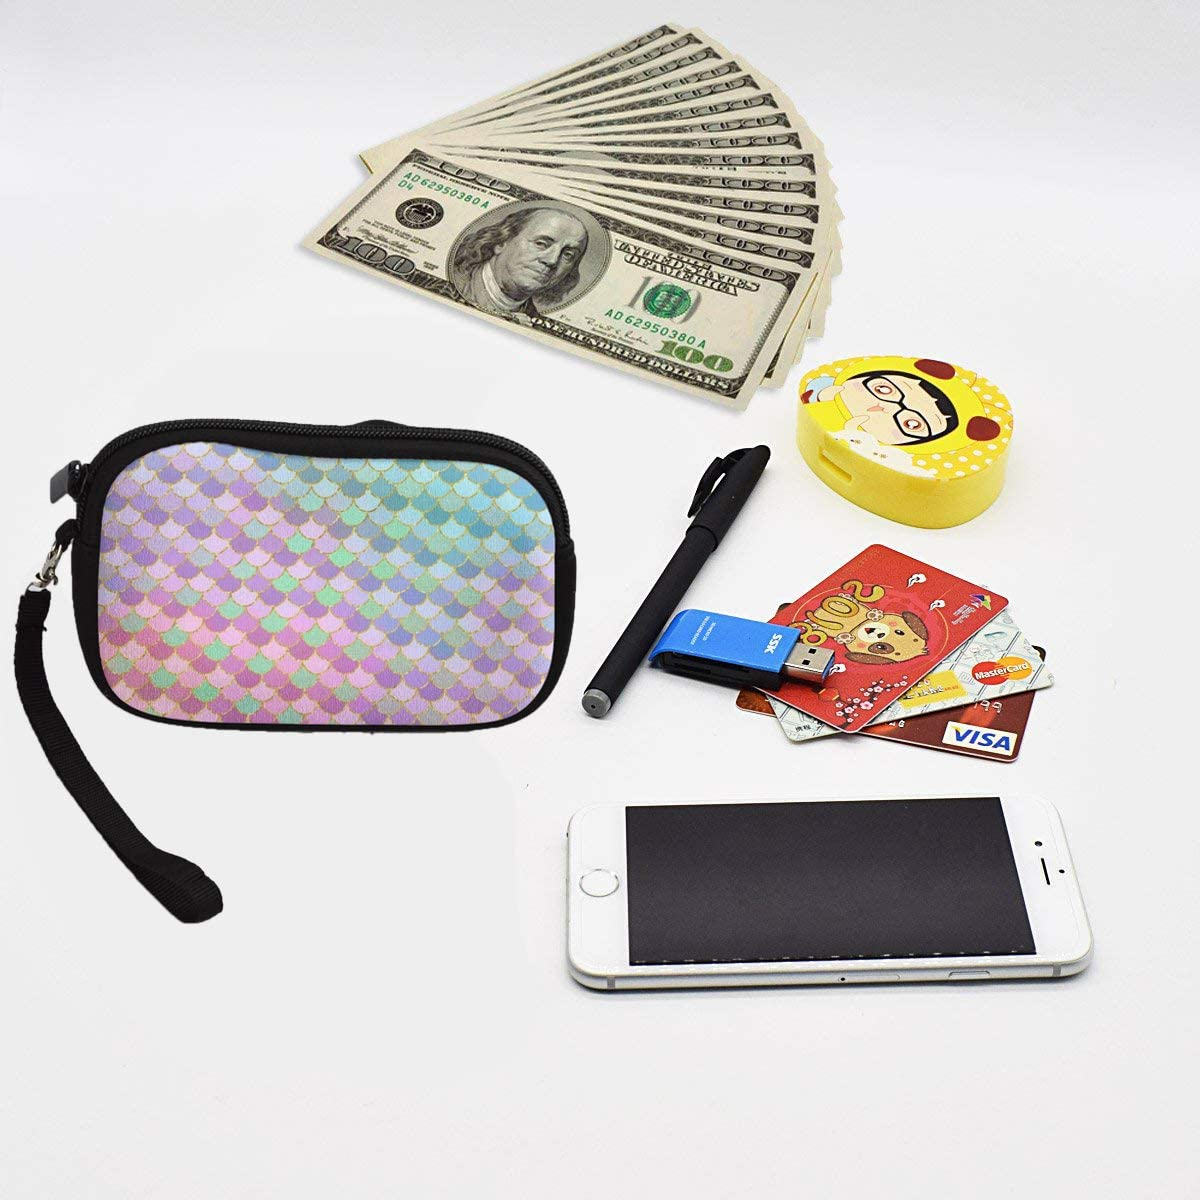 Womens Waterproof Zipper Wristlet Coin Change Cash Money Wallets Soft and Durable Fashion Phone Camera Holder Purse Cool Tie Dye Weed Unique Design Keys//Bank Credit Card//Pencil Clutch